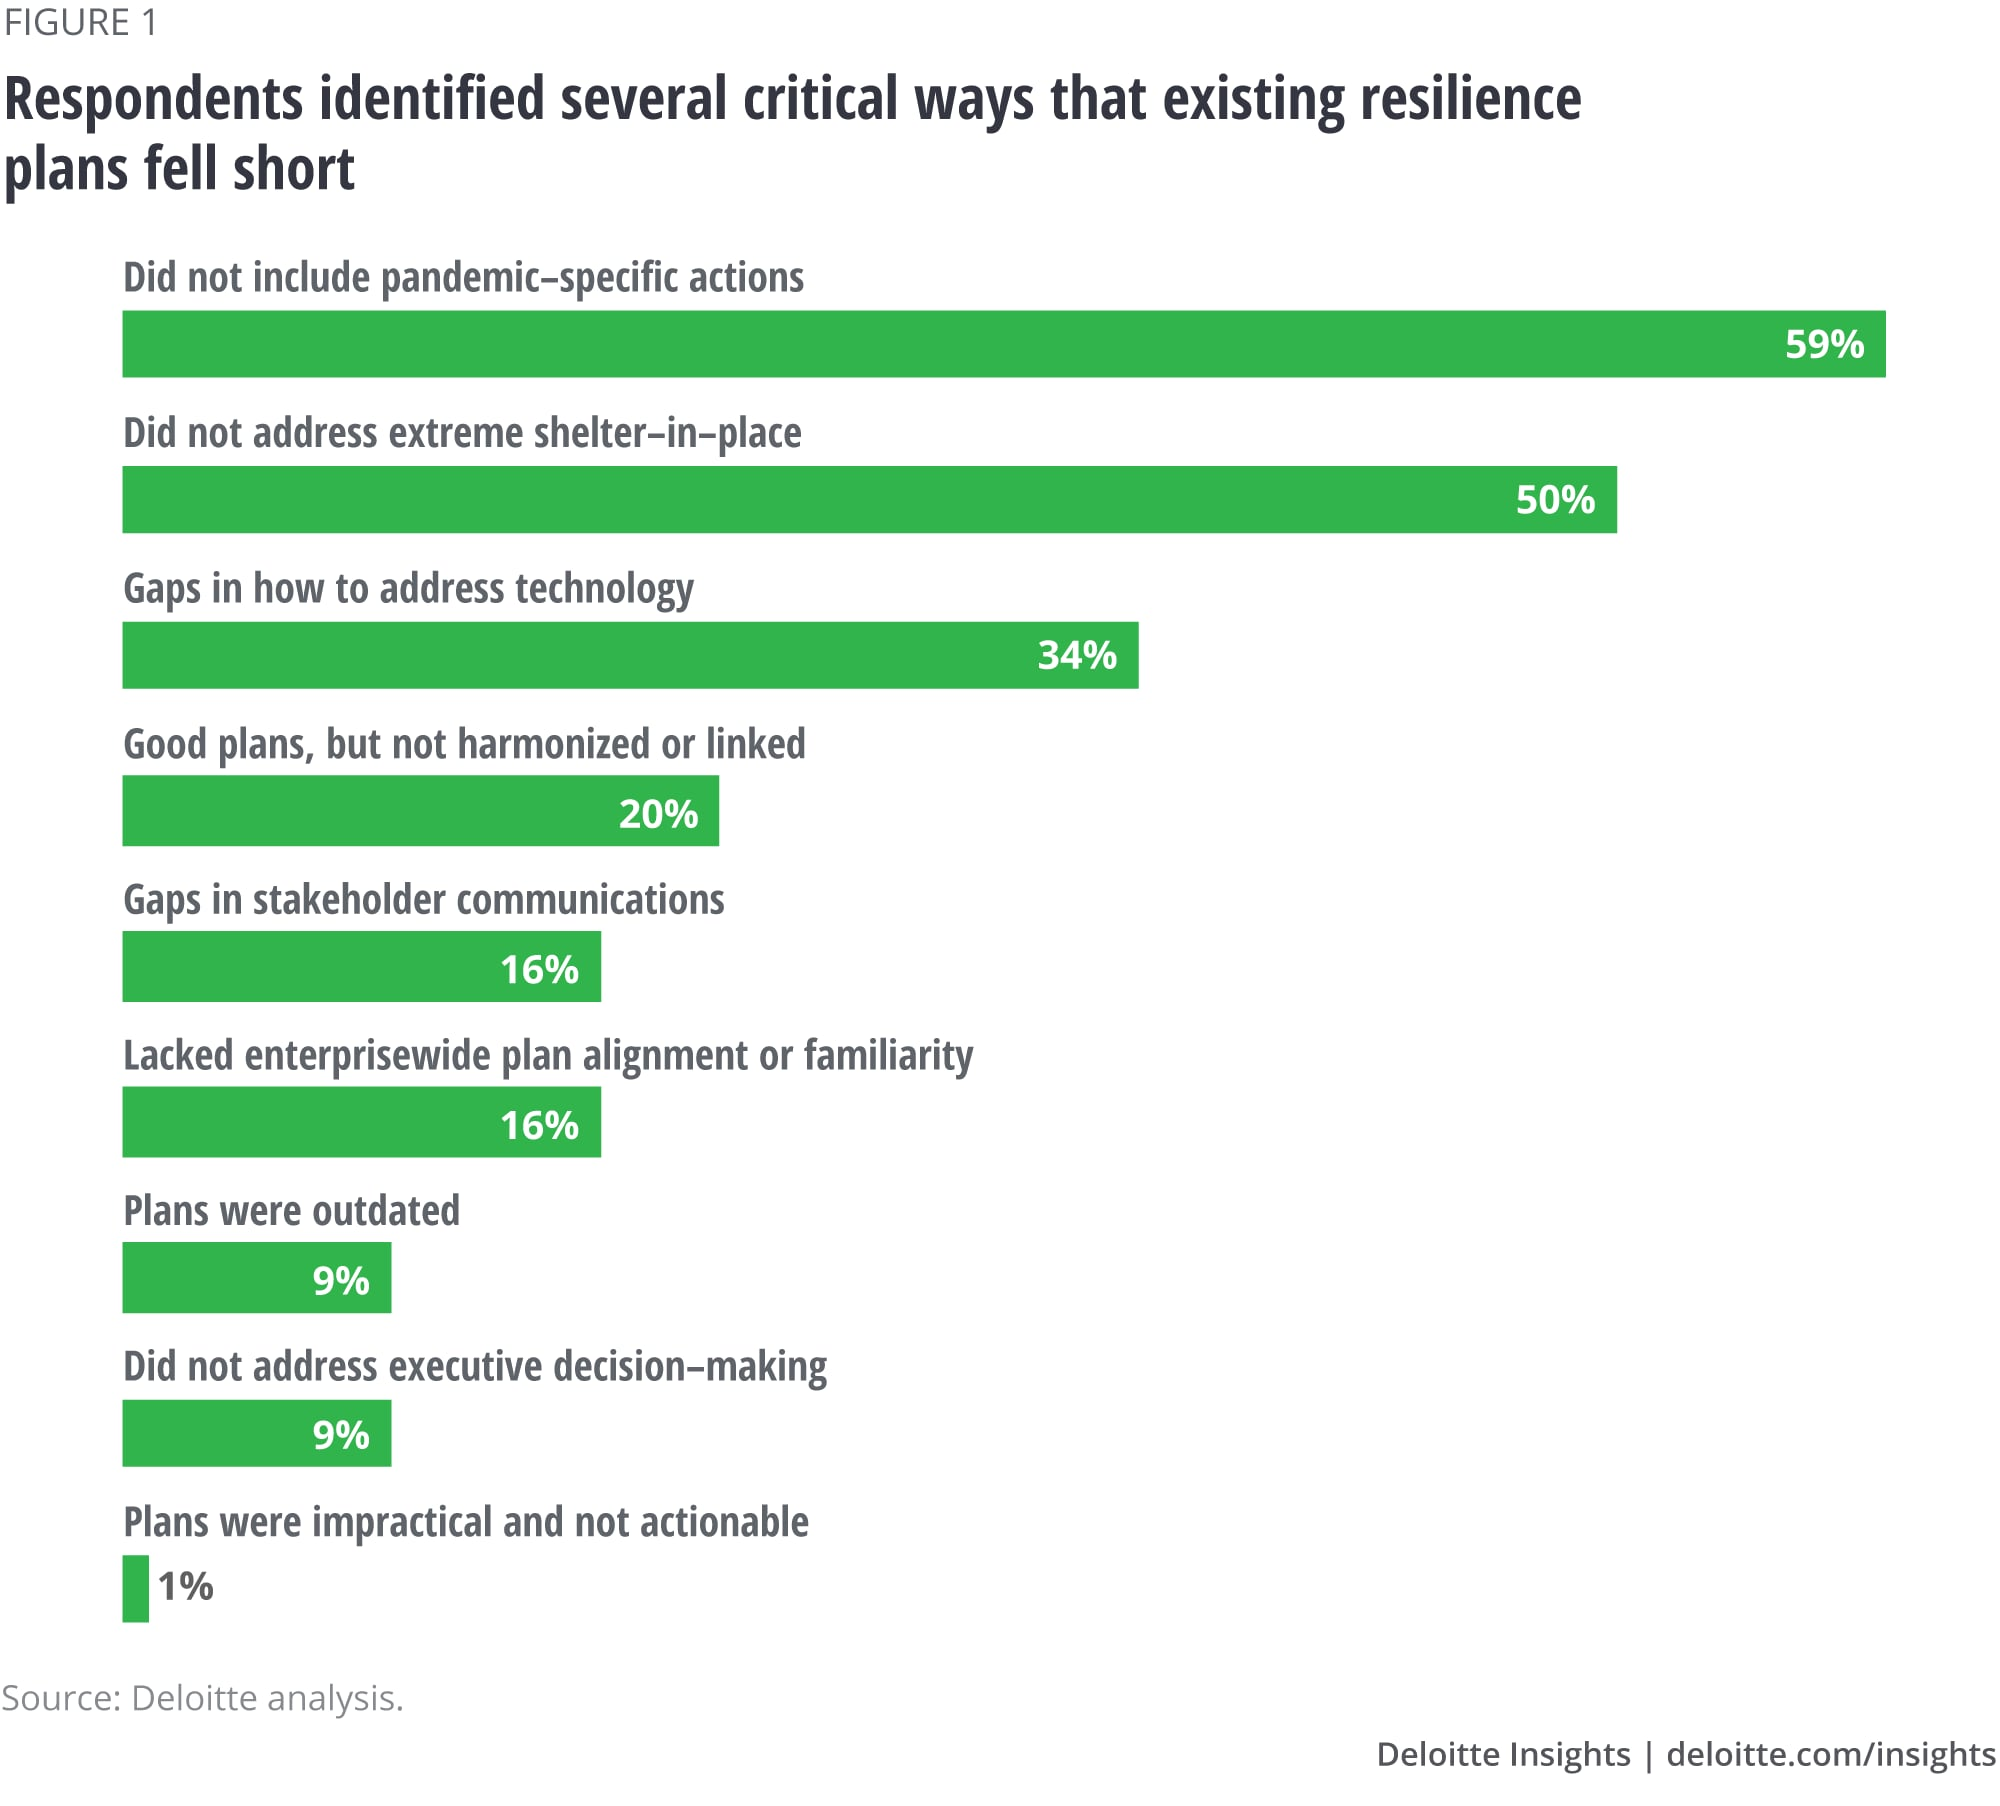 Respondents identified several critical ways that existing resilience plans fell short